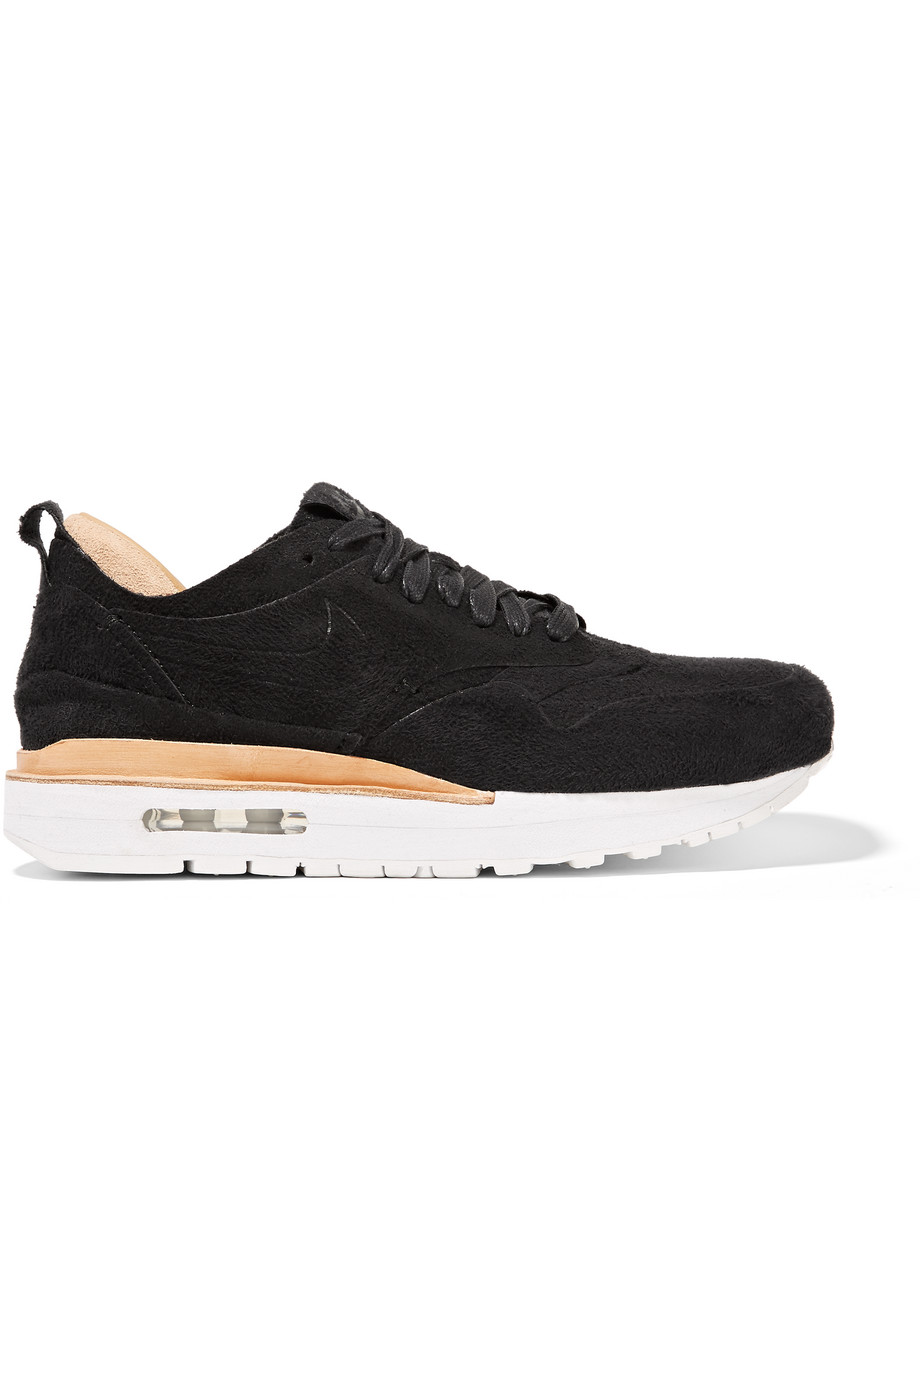 Nike Nikelab Air Max 1 Royal Faux Suede and Leather Sneakers, Black, Women's, Size: 8